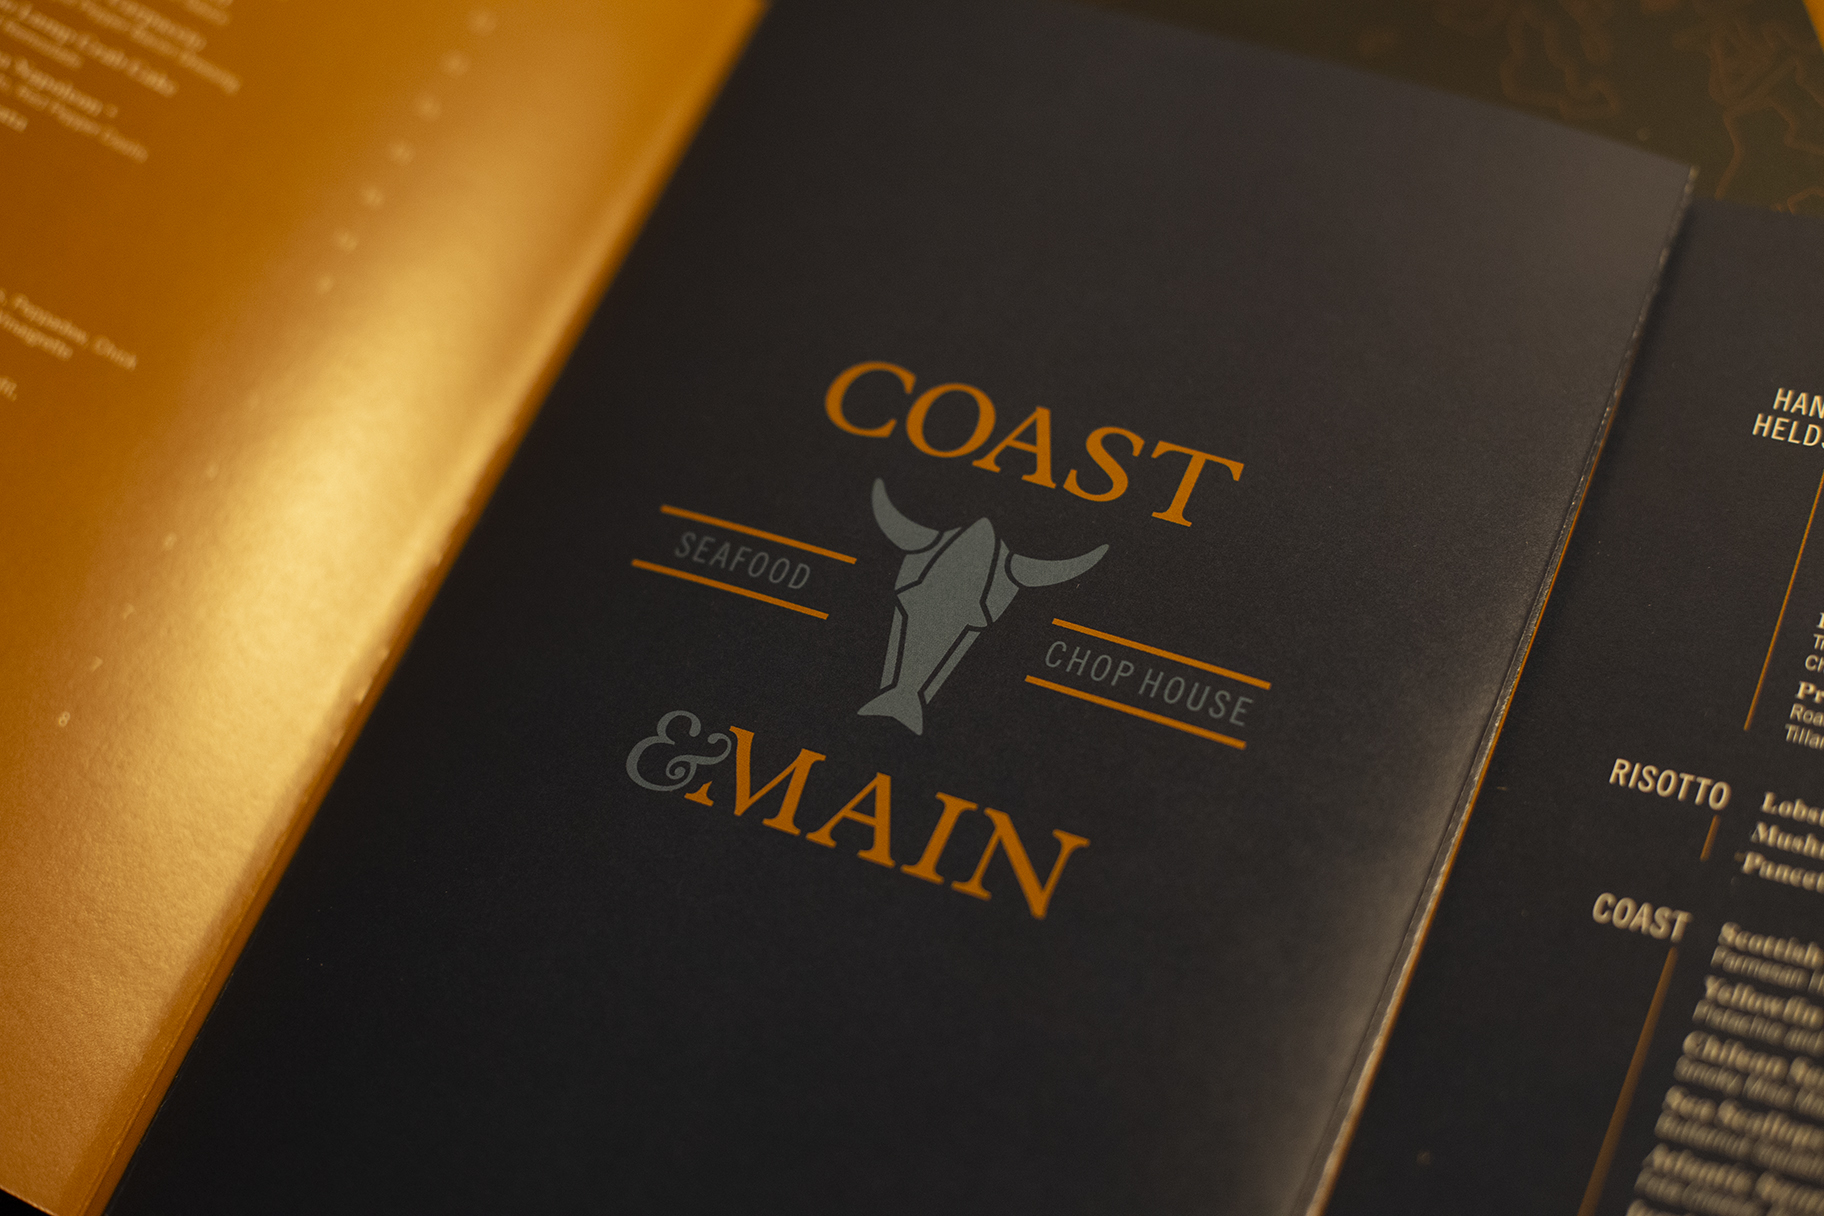 coastandmain_menu4_bootstrap_design_co.jpg